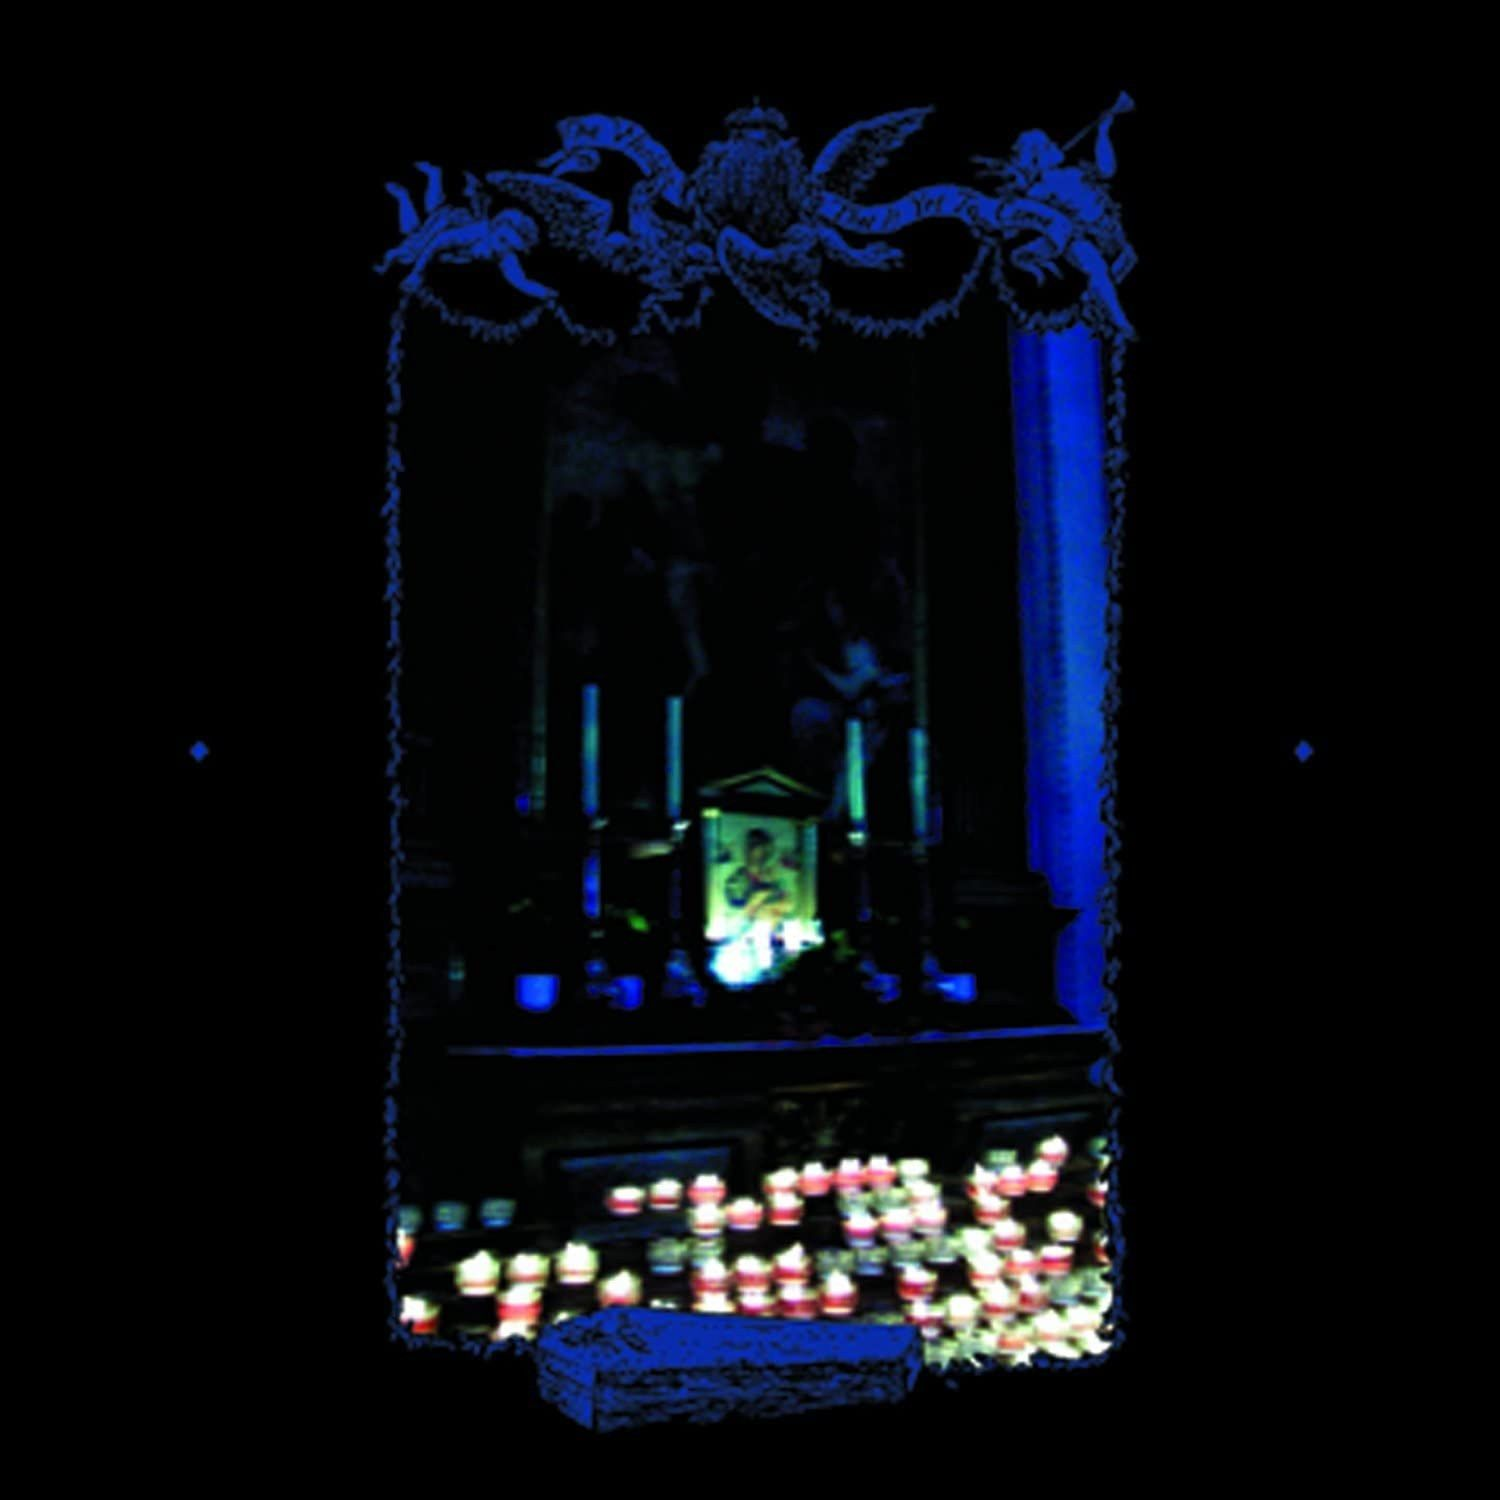 Review for Negative Plane - Stained Glass Revelations